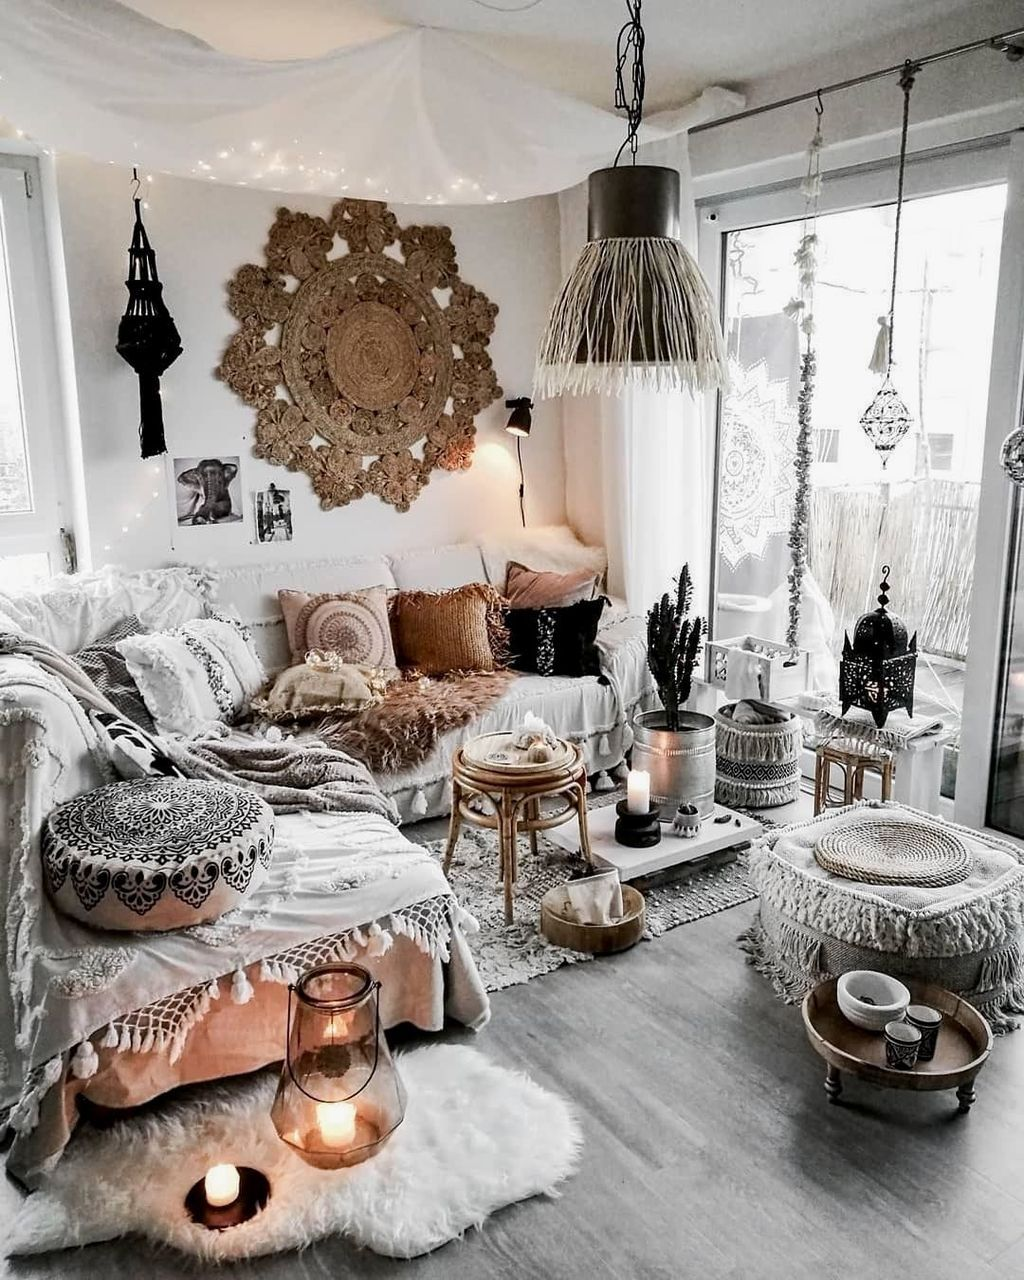 30+ Inspiring Bohemian Living Room Ideas For Your Home images